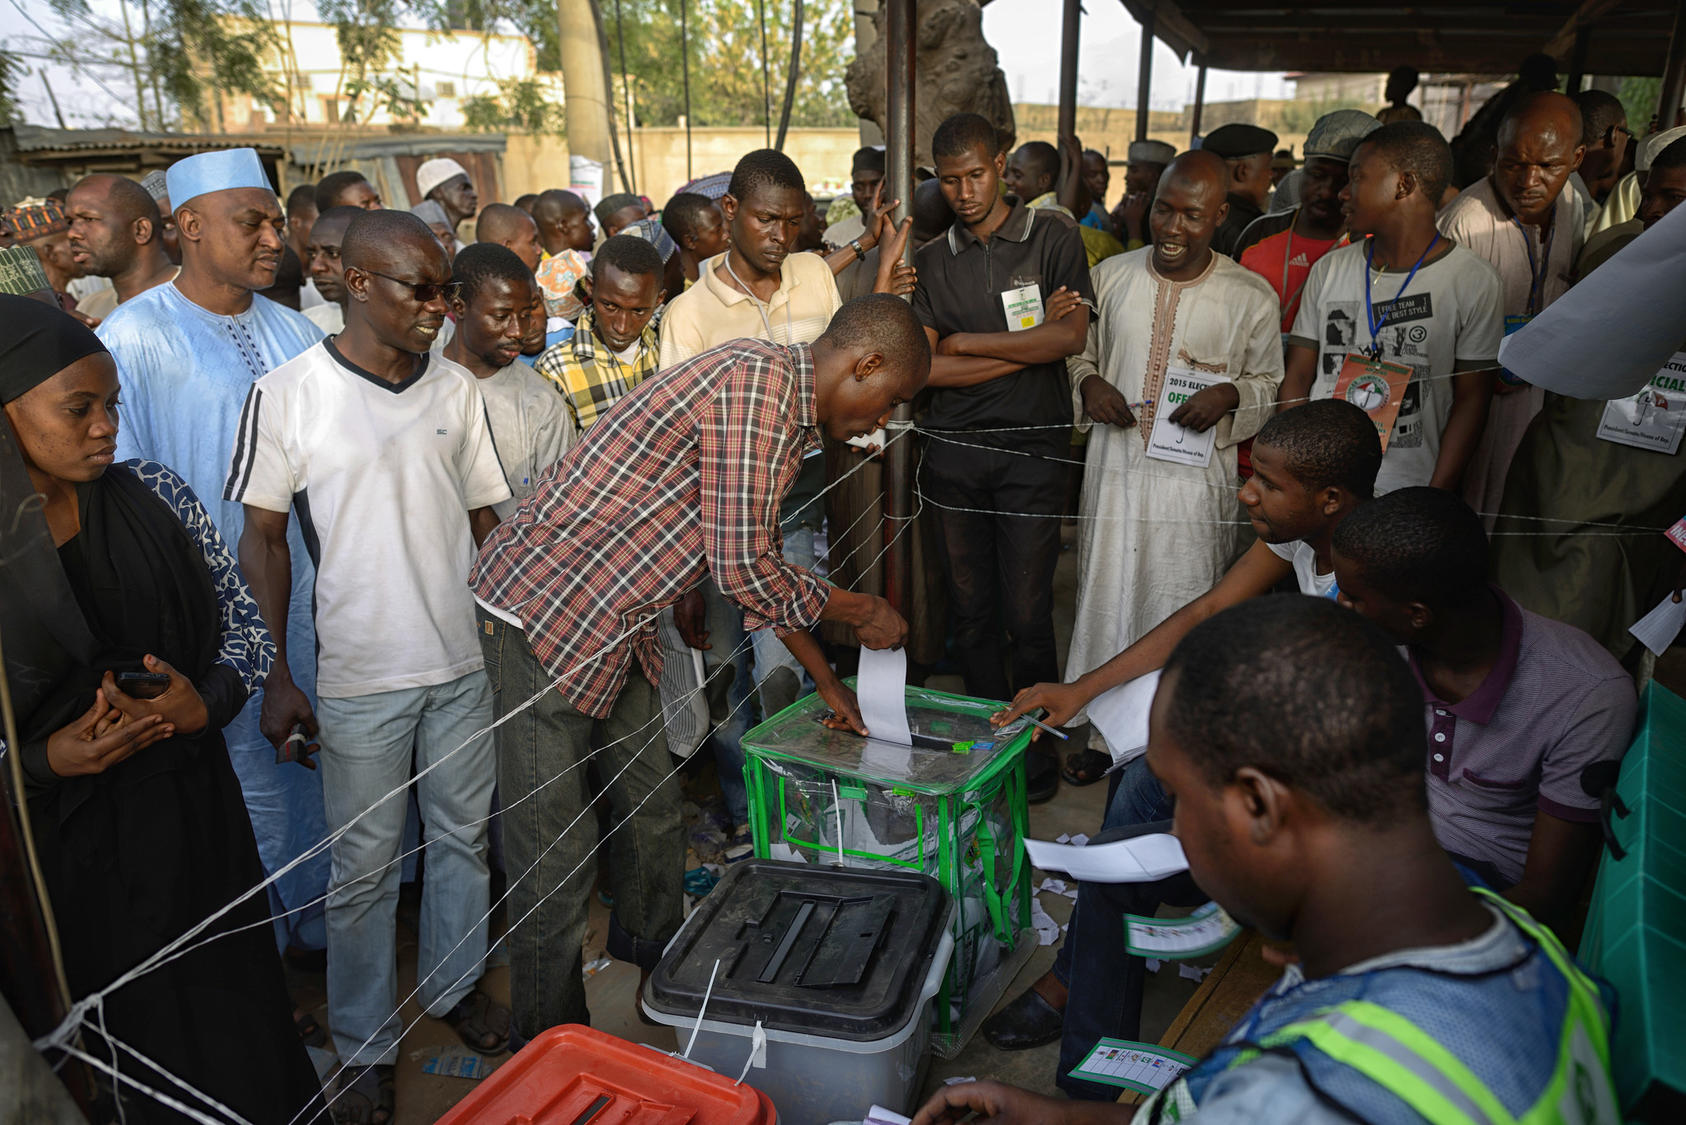 A man casts his ballot at a polling station in Kano, Nigeria, March 28, 2015. Many Nigerians fear a clash along religious, ethnic, and sectional lines regardless of the result of the presidential race between incumbent Goodluck Jonathan, a Christian from the south, and Muhammadu Buhari, a former military ruler and Muslim northerner.